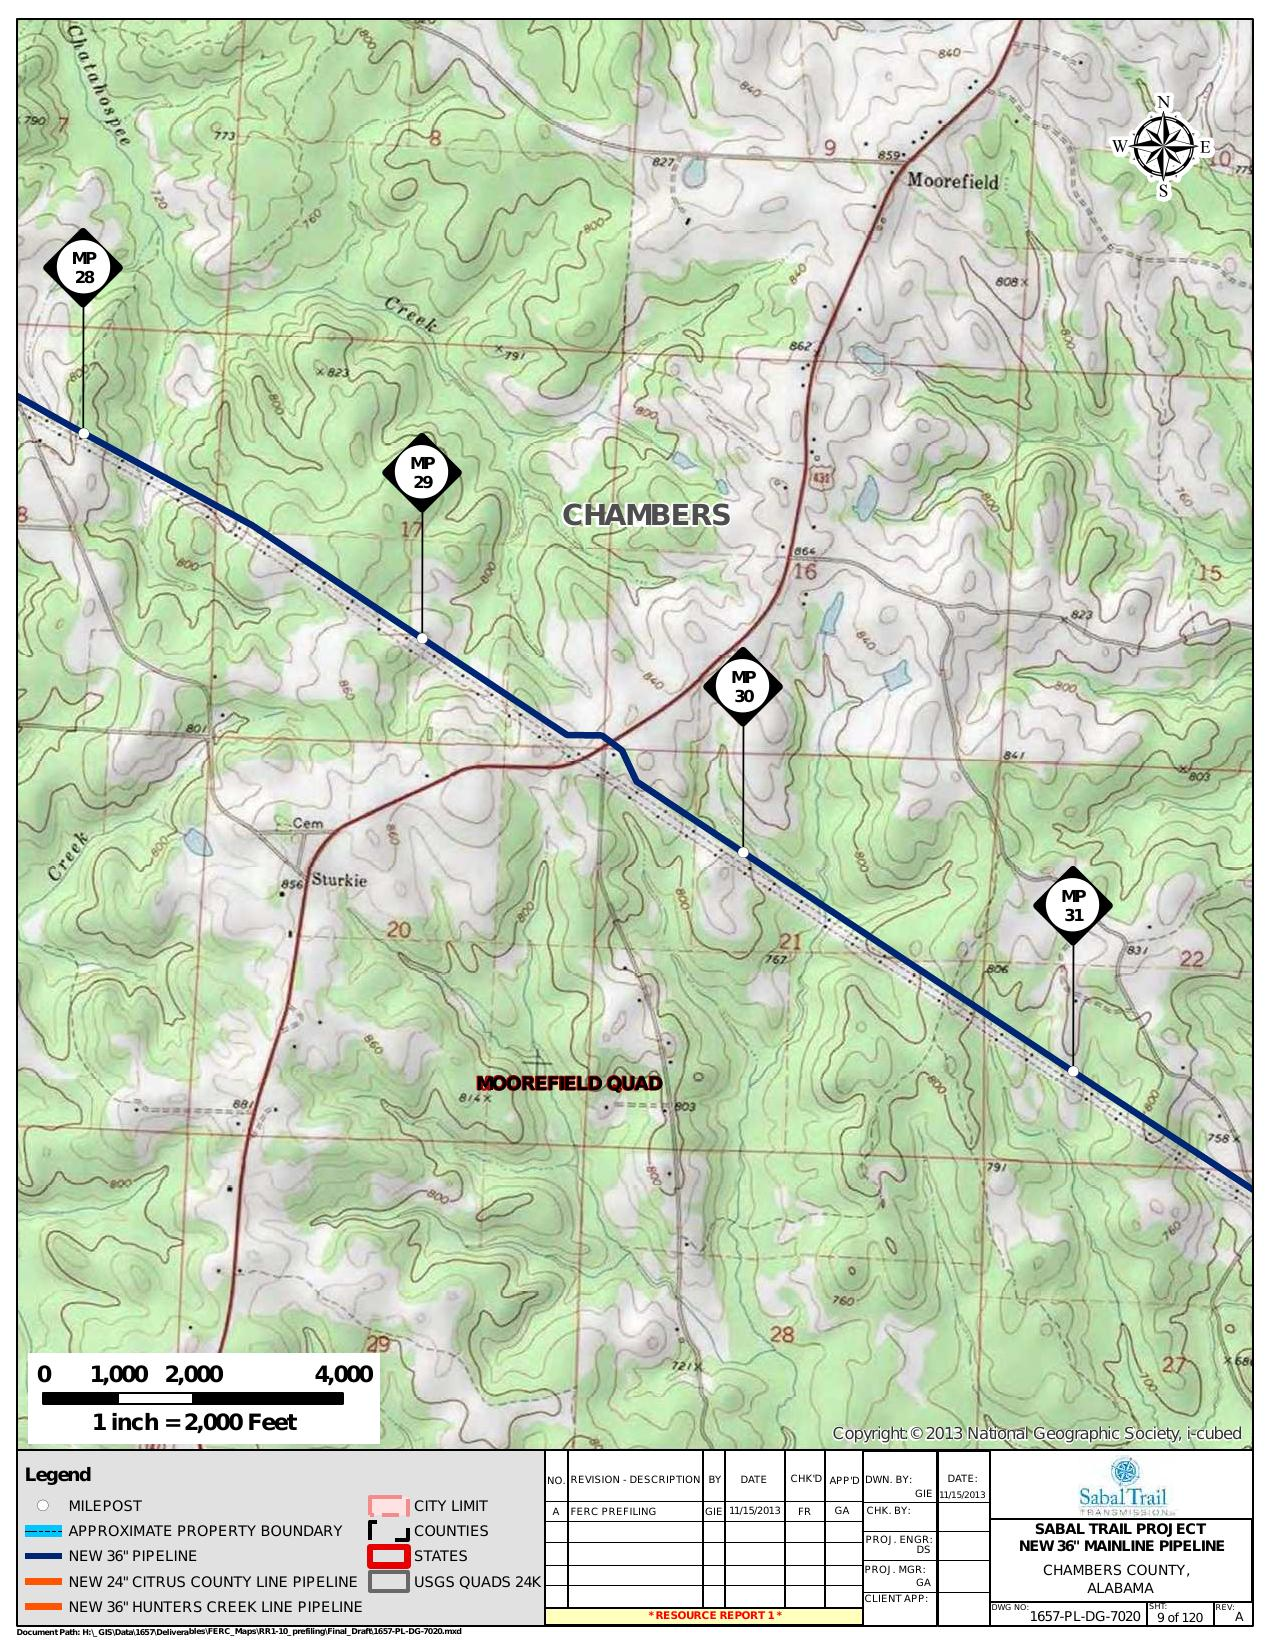 Moorefield, Moorefield Quad, Chambers County, Alabama, in General Project Description, by SpectraBusters, for FERC Docket No. PF14-1-000, 15 November 2013, converted by SpectraBusters